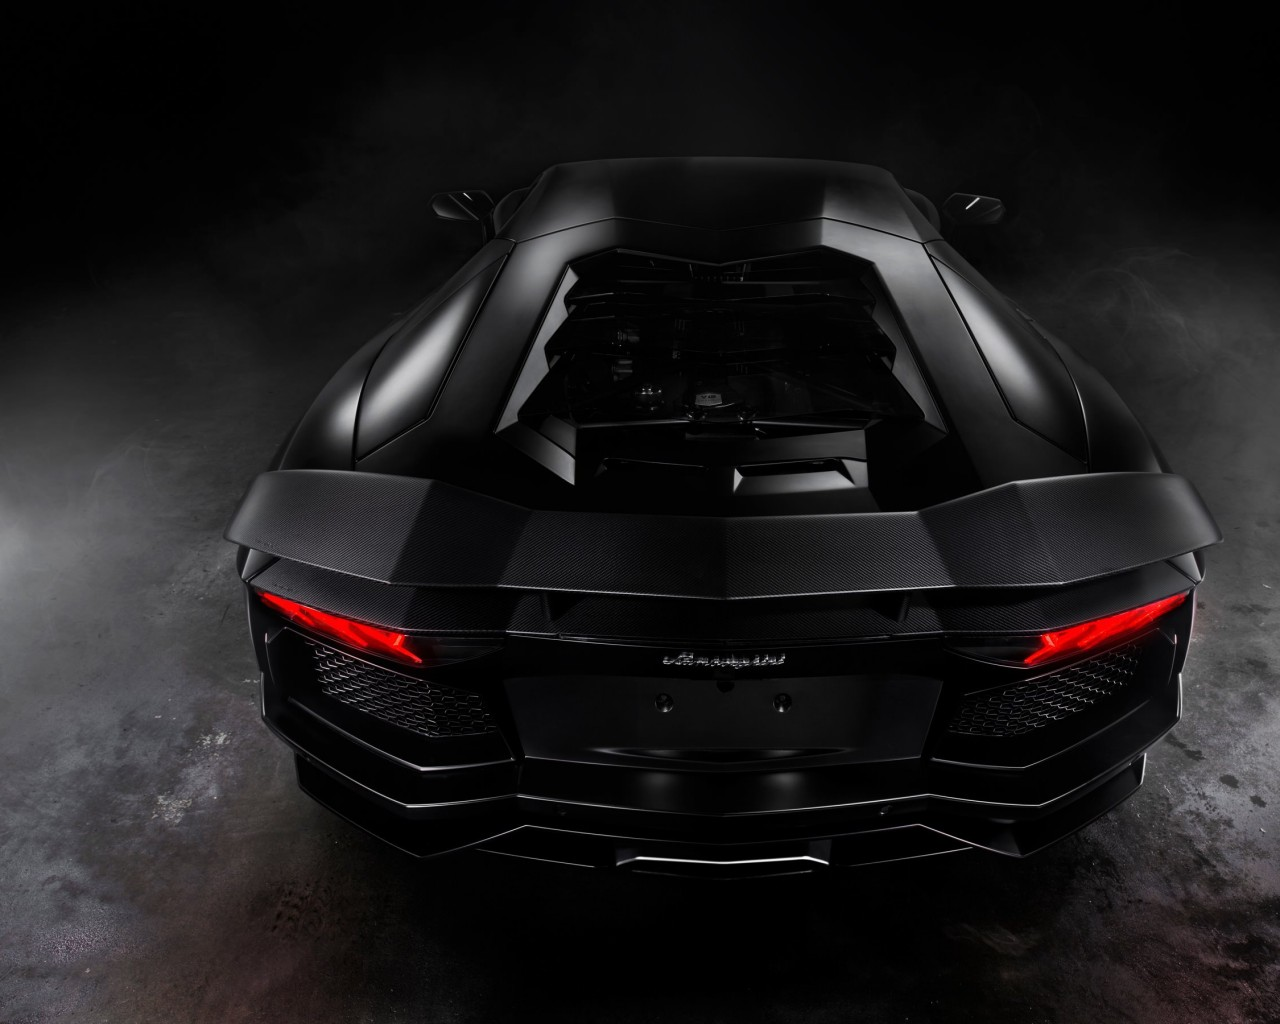 Lamborghini Aventador Matte Black Wallpaper for Desktop 1280x1024